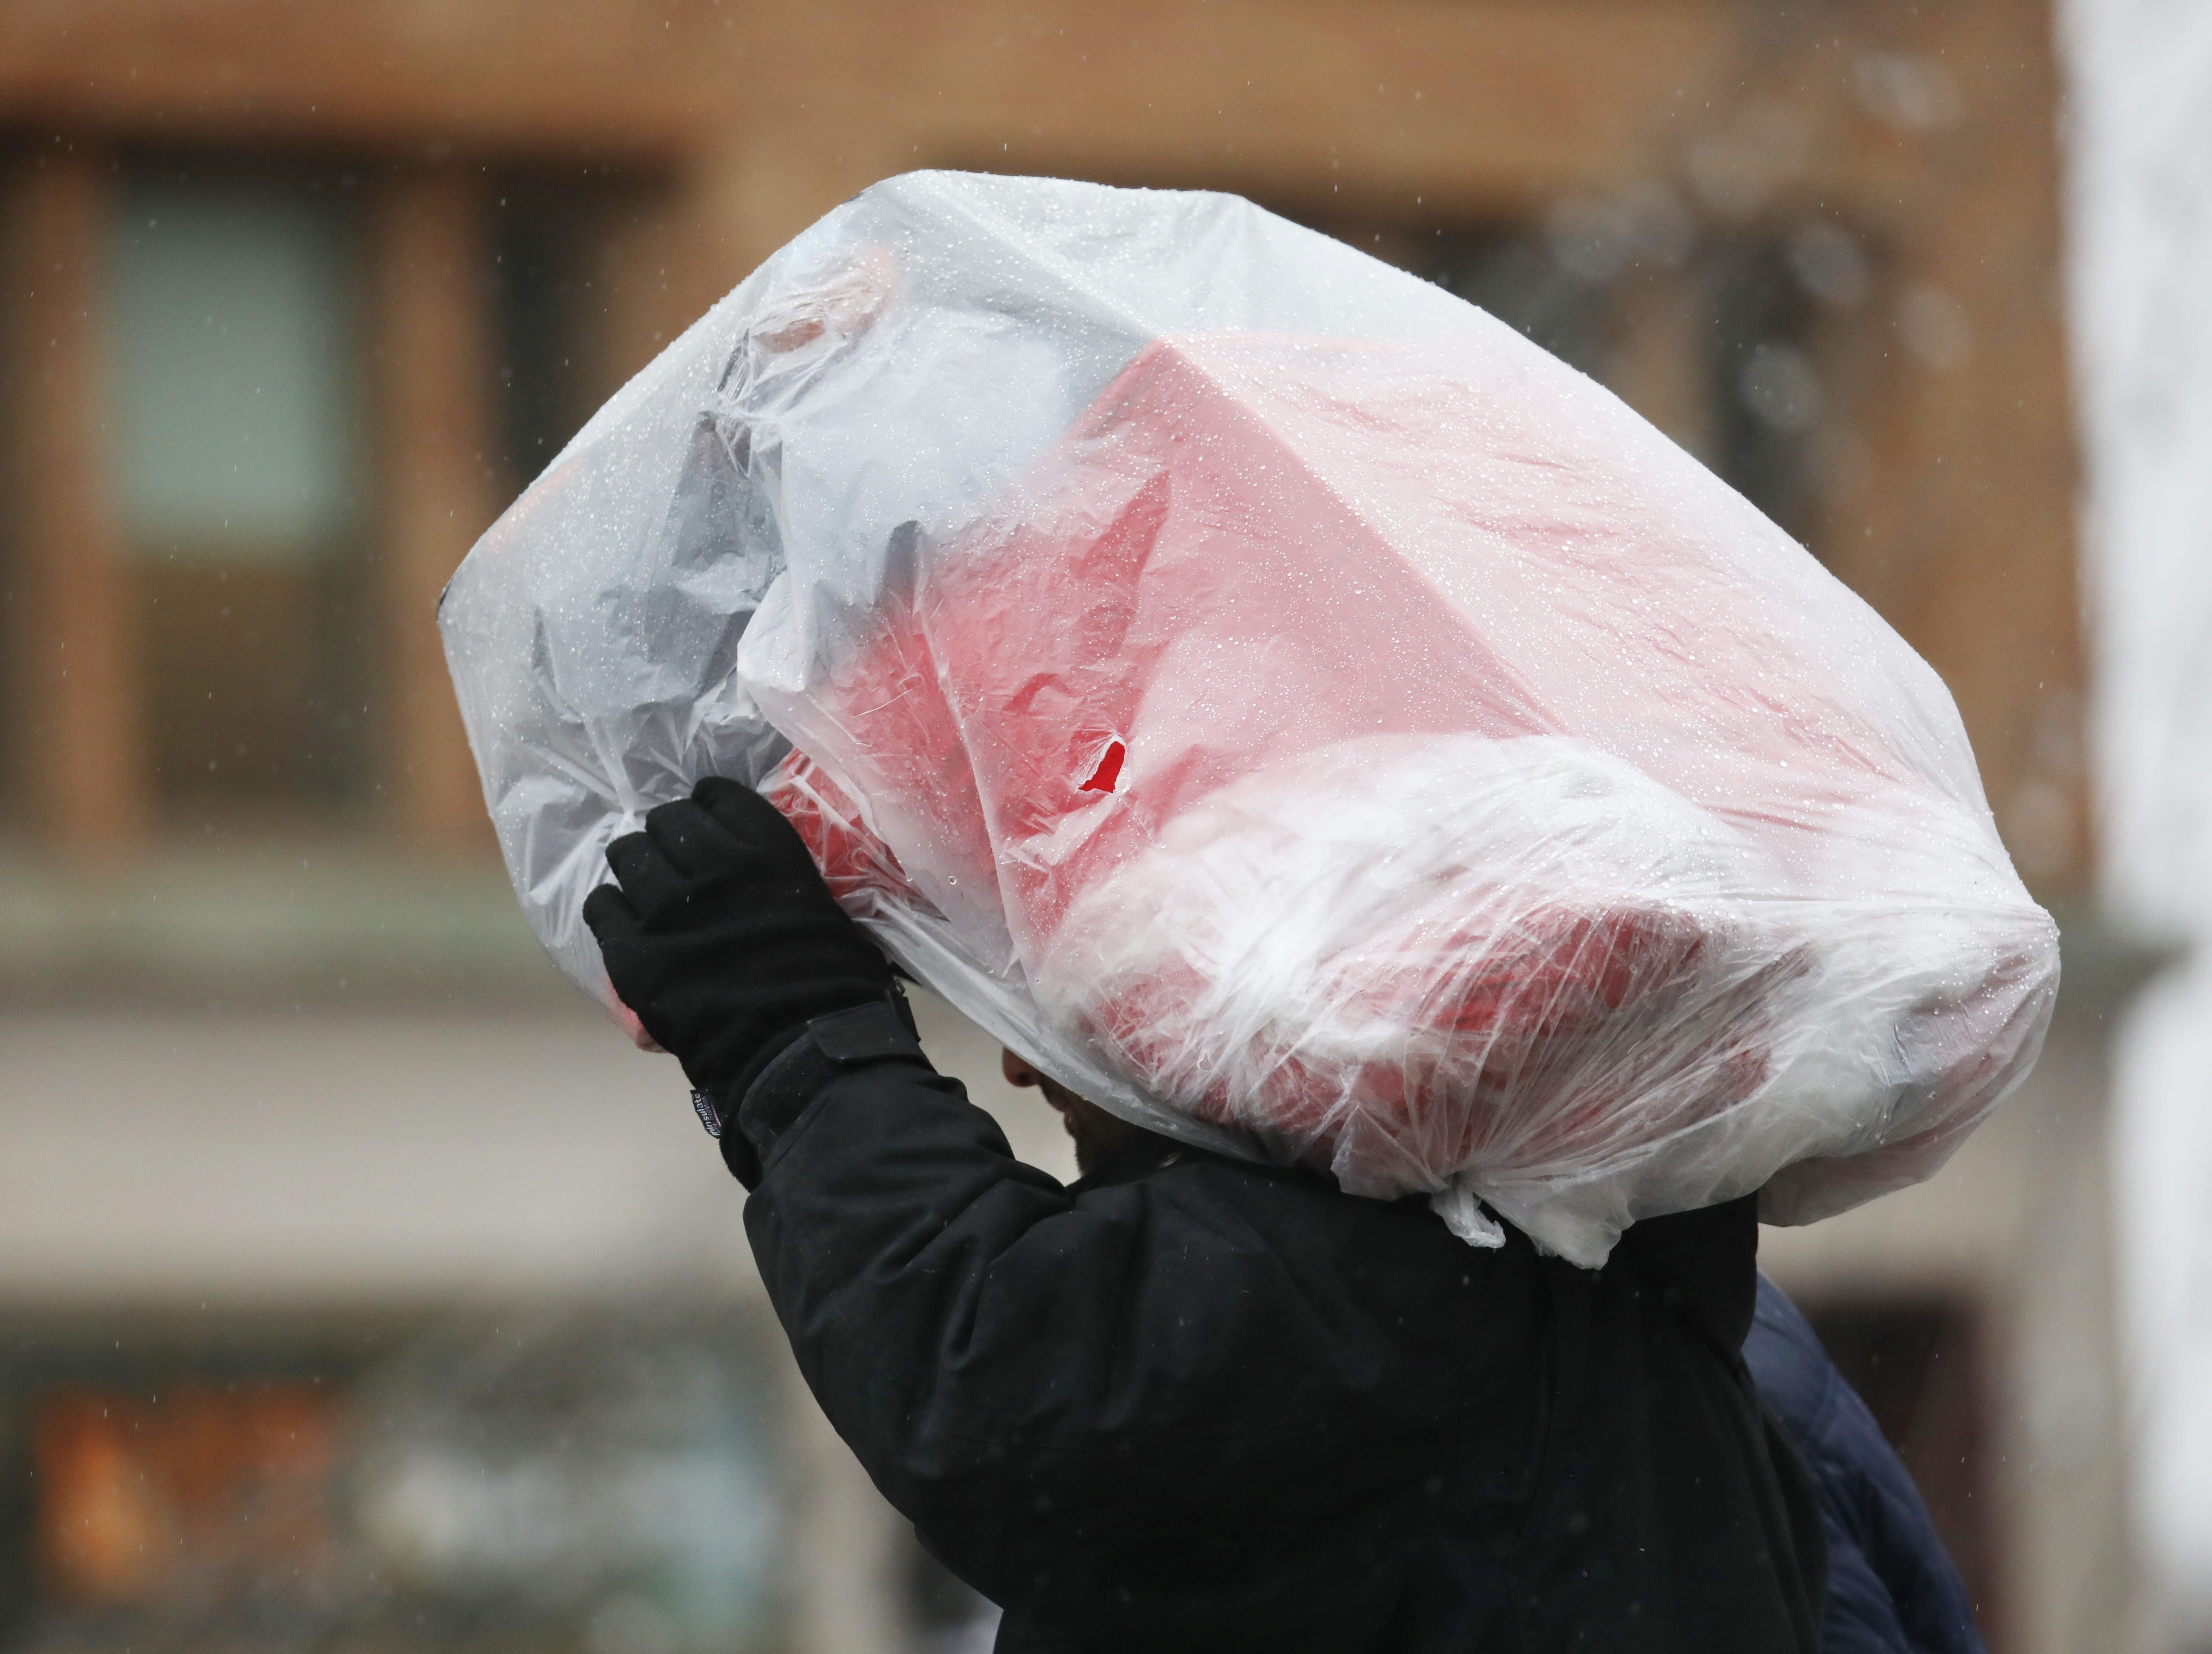 A man uses a toy car wrapped in plastic to cover his head from the rain in downtown Rochester.